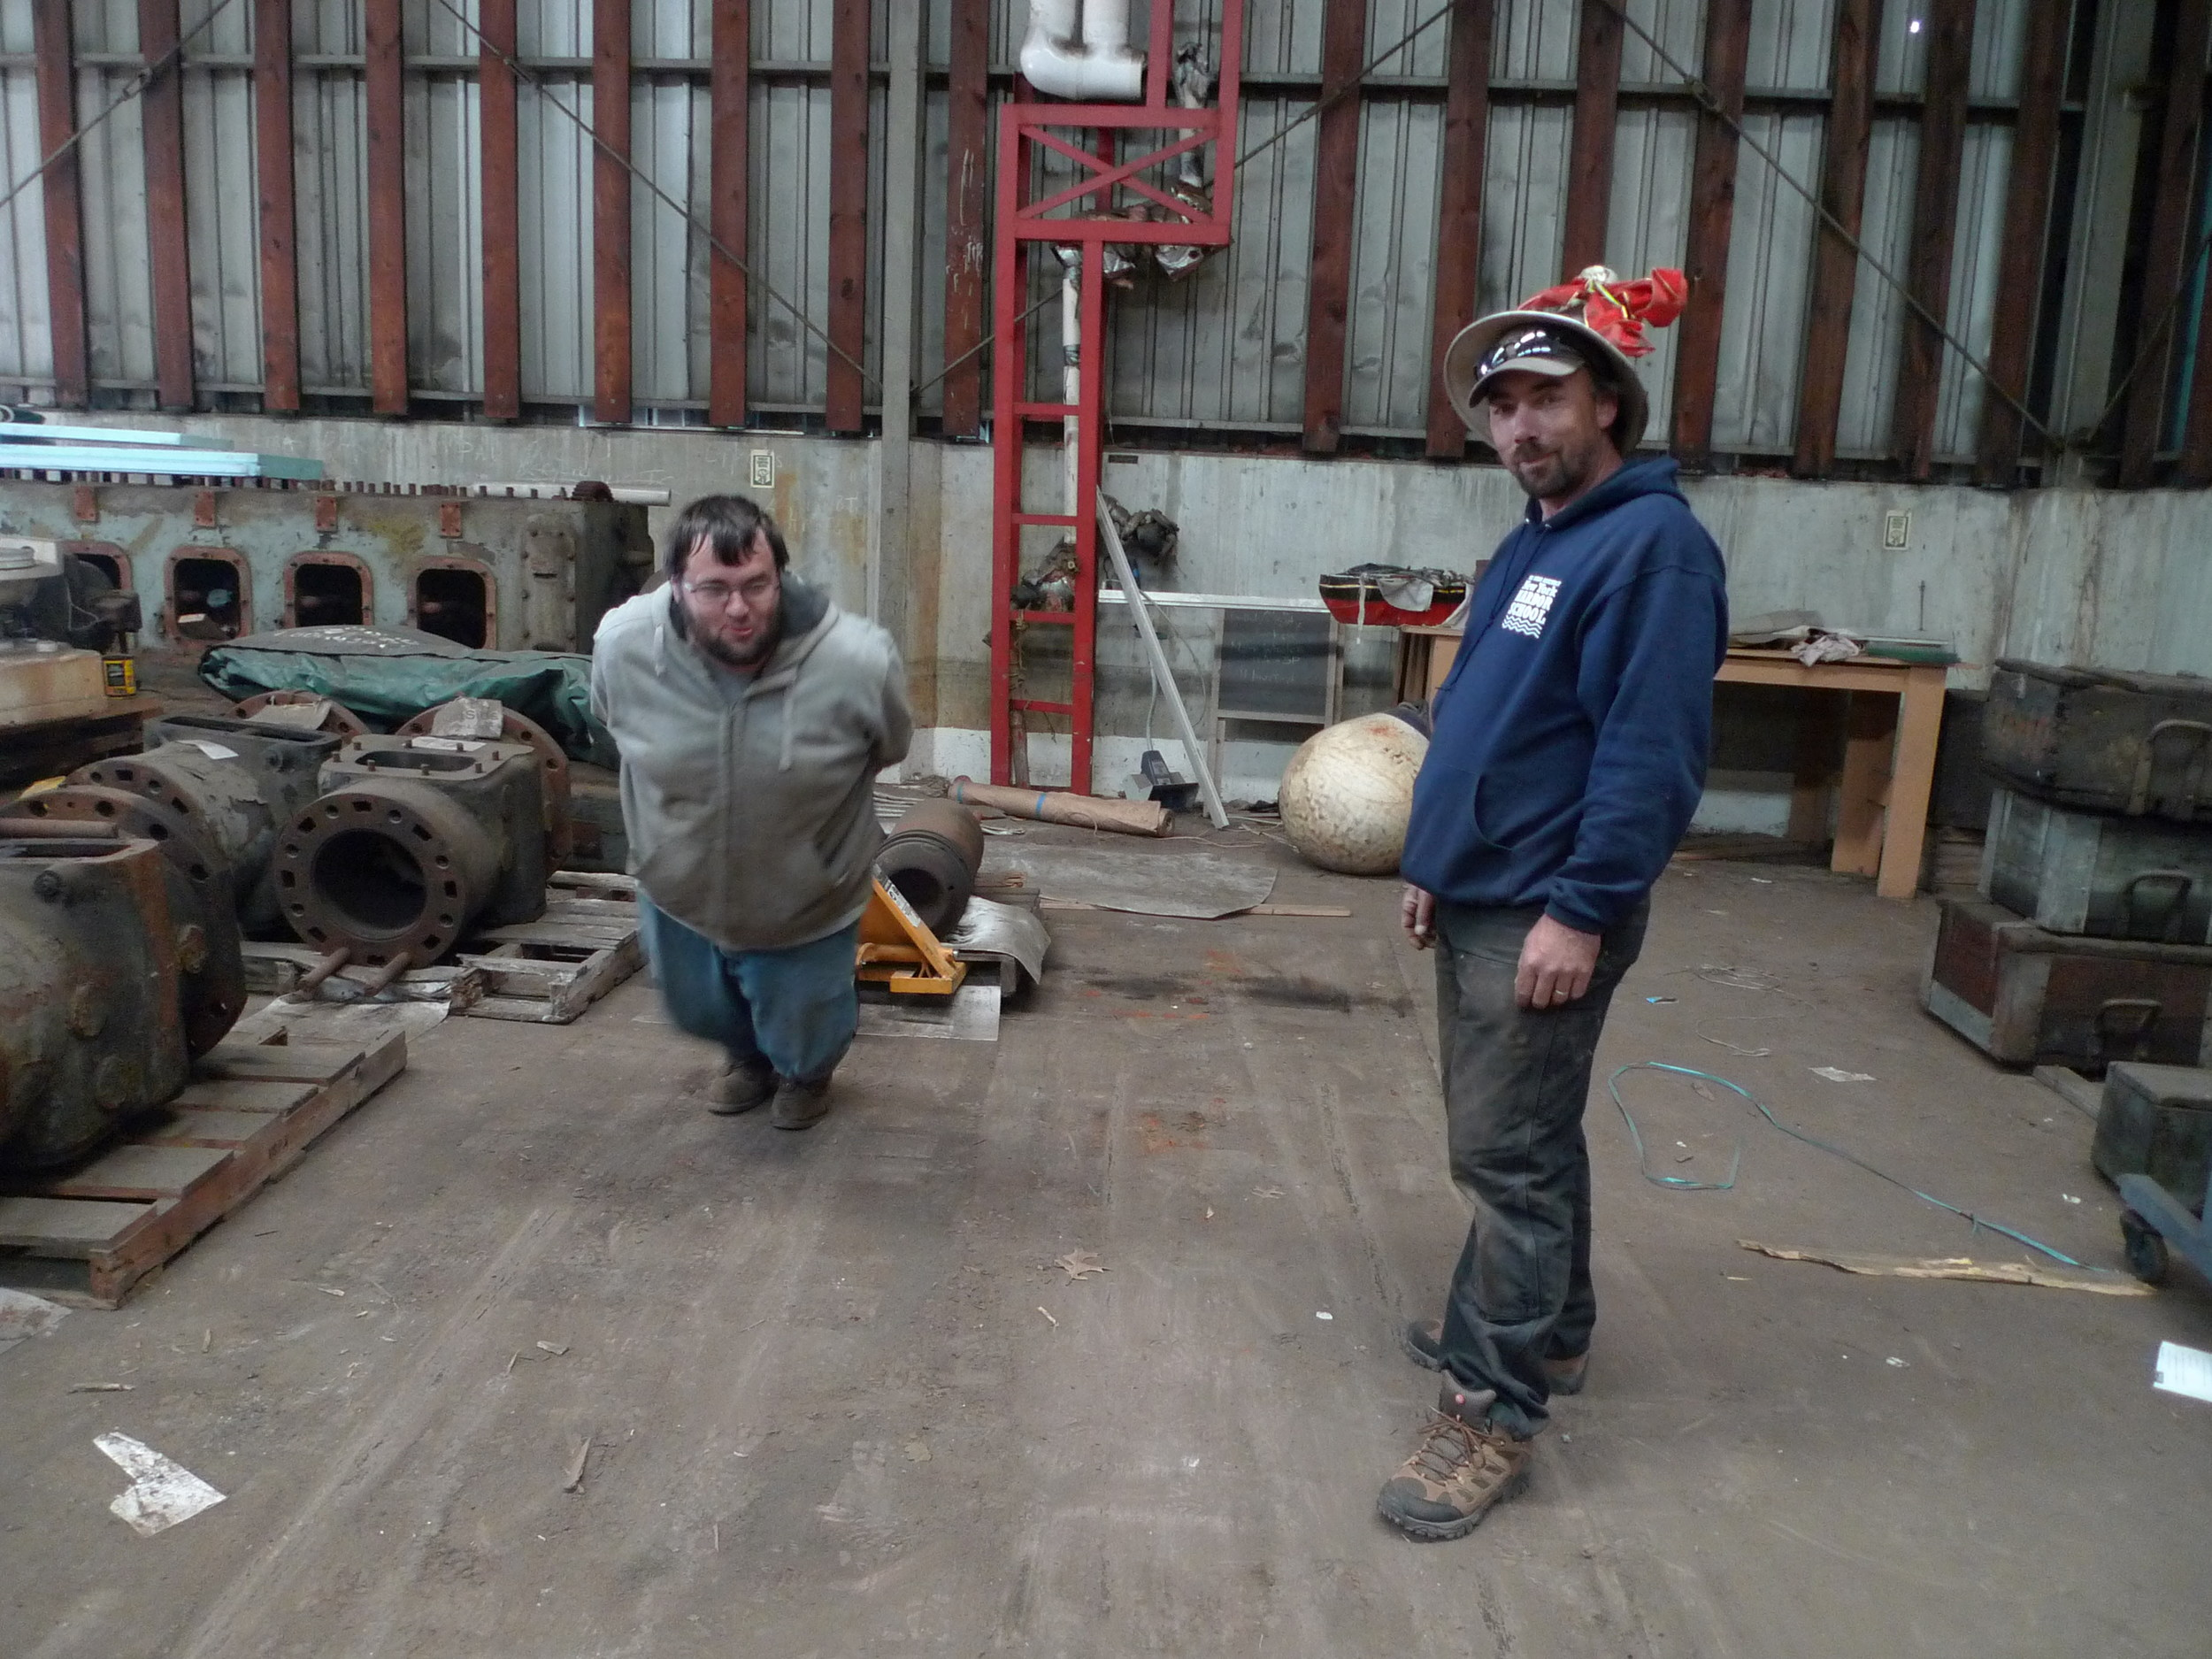 Paul Strubeck pulling out some pistons while Mike Abegg wears part of our Operation Christmas Cheer paraphinalia.